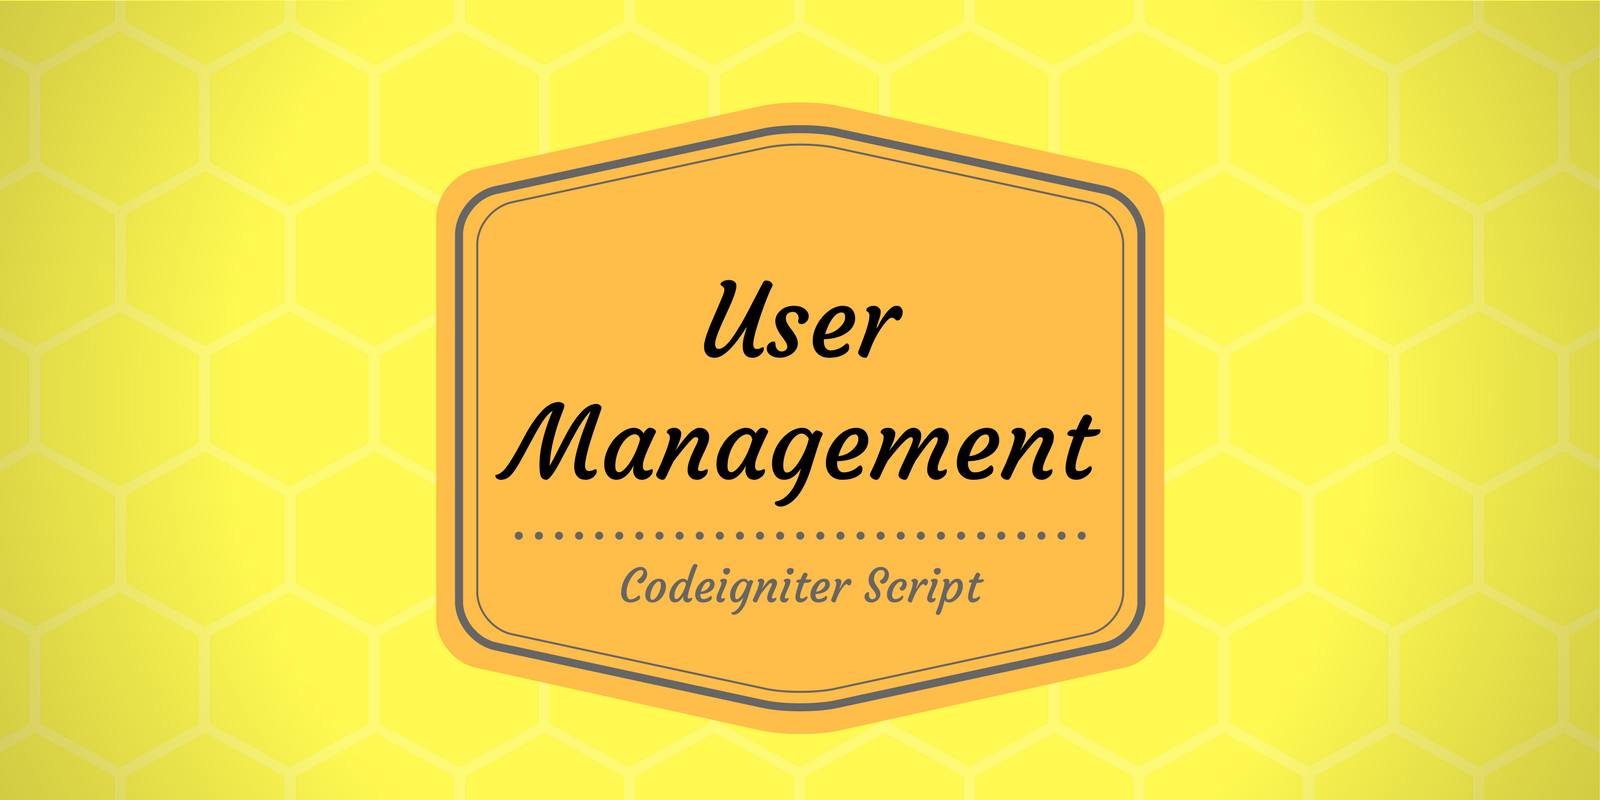 PHP/Codeigniter User Management Script with adminlte - Free